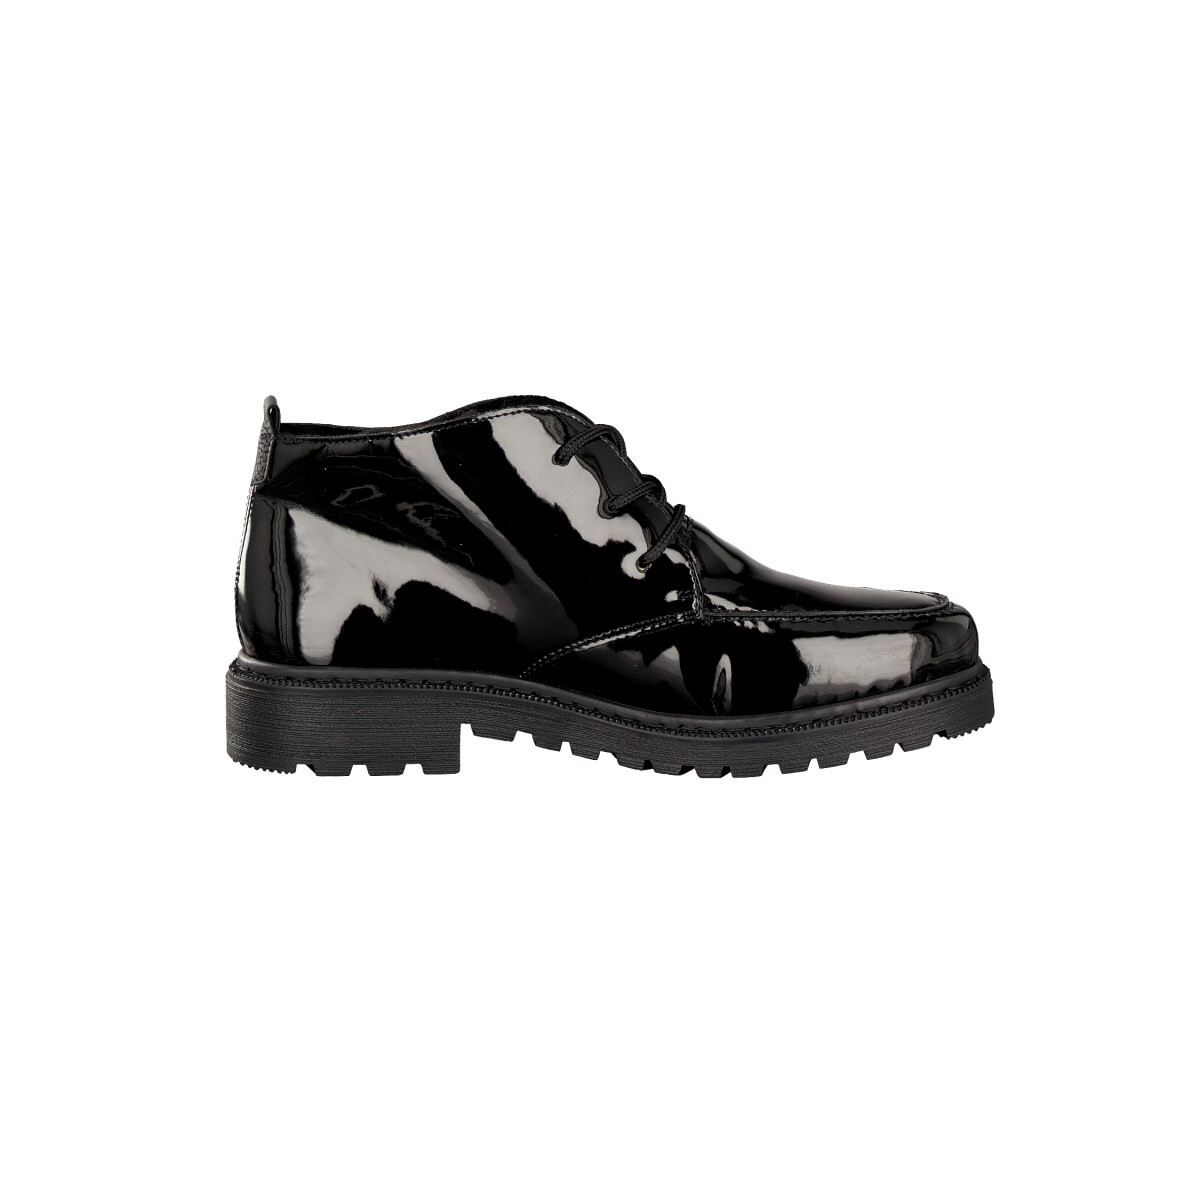 rieker lace up boot black 76312 02